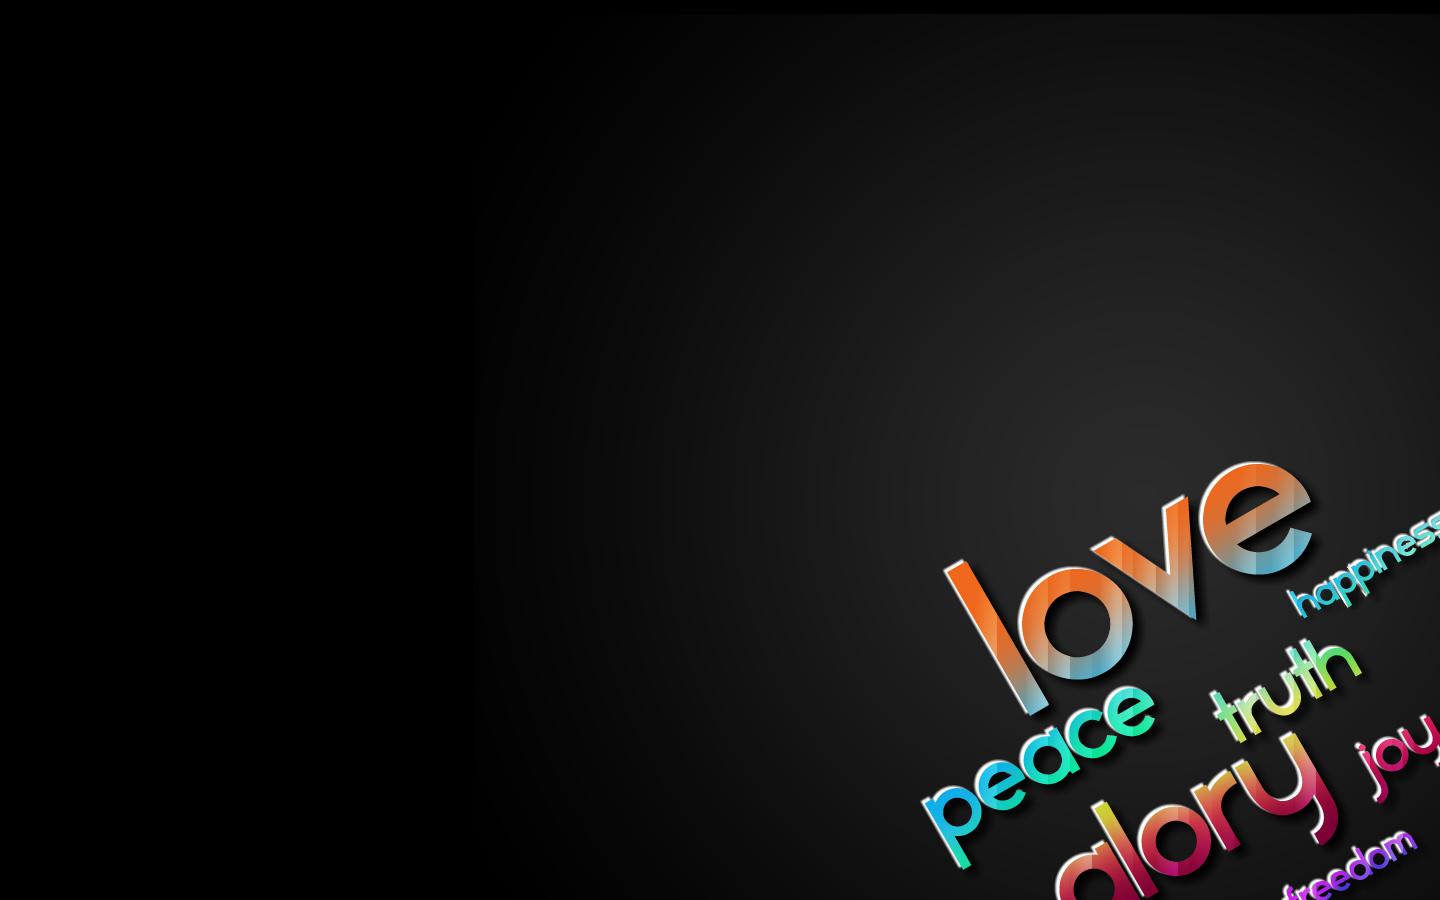 wallpaper desk : love peace wallpaper, wallpapers and